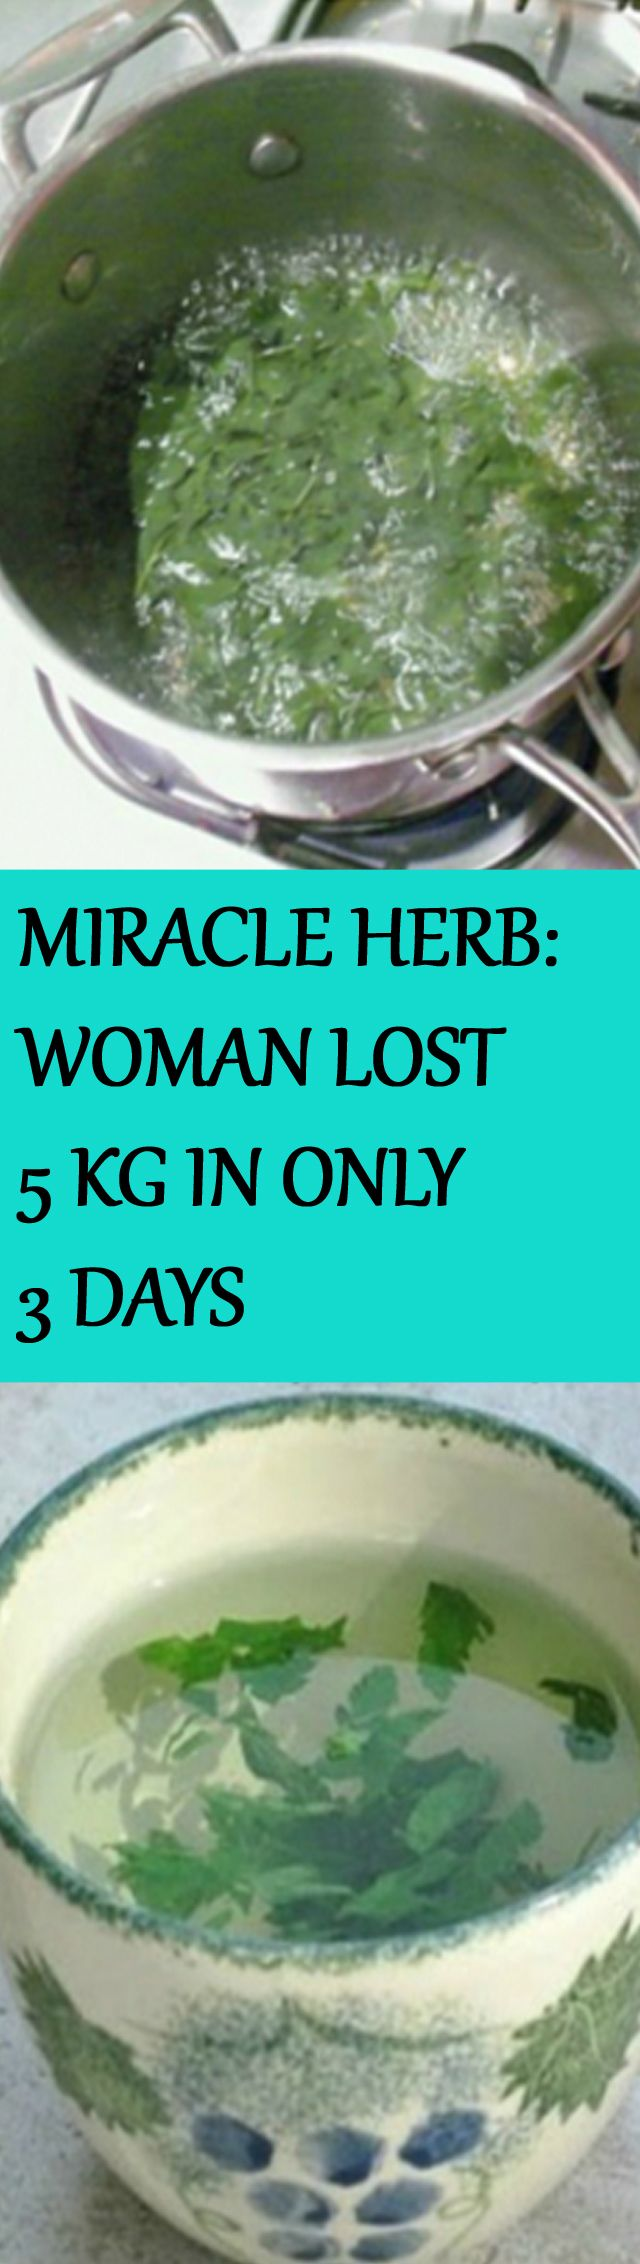 A MIRACLE HERB: WOMAN WAS 72 KG ON THURSDAY, AND WENT DOWN TO 67 KG BY SATURDAY